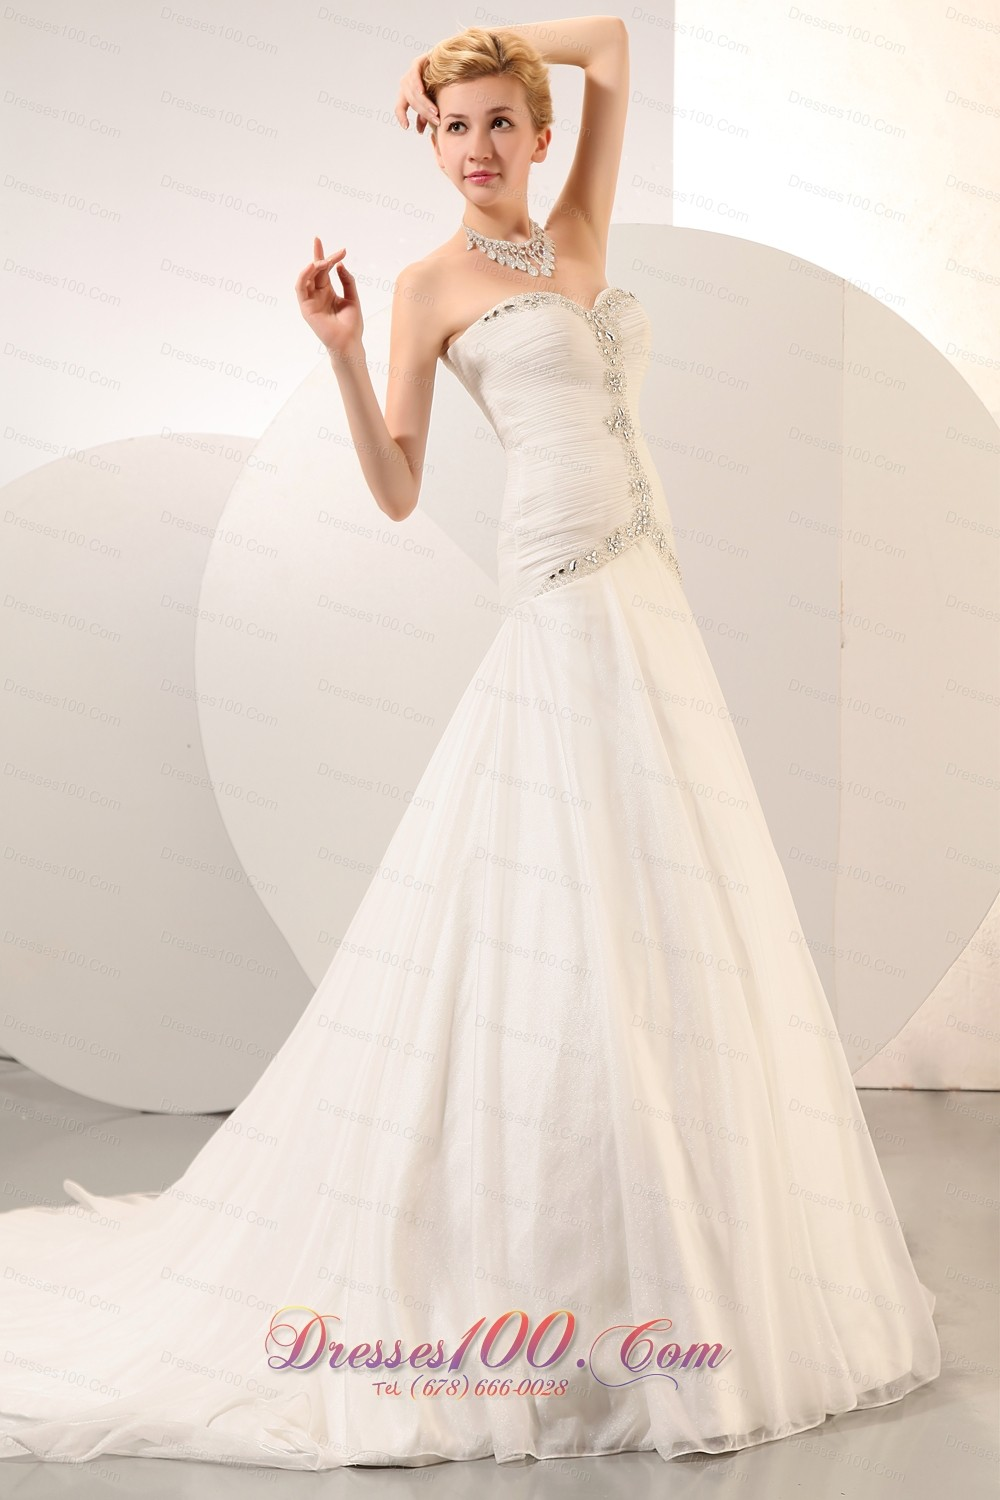 Formal Structured Wedding Dress Rhinestones Chapel Train